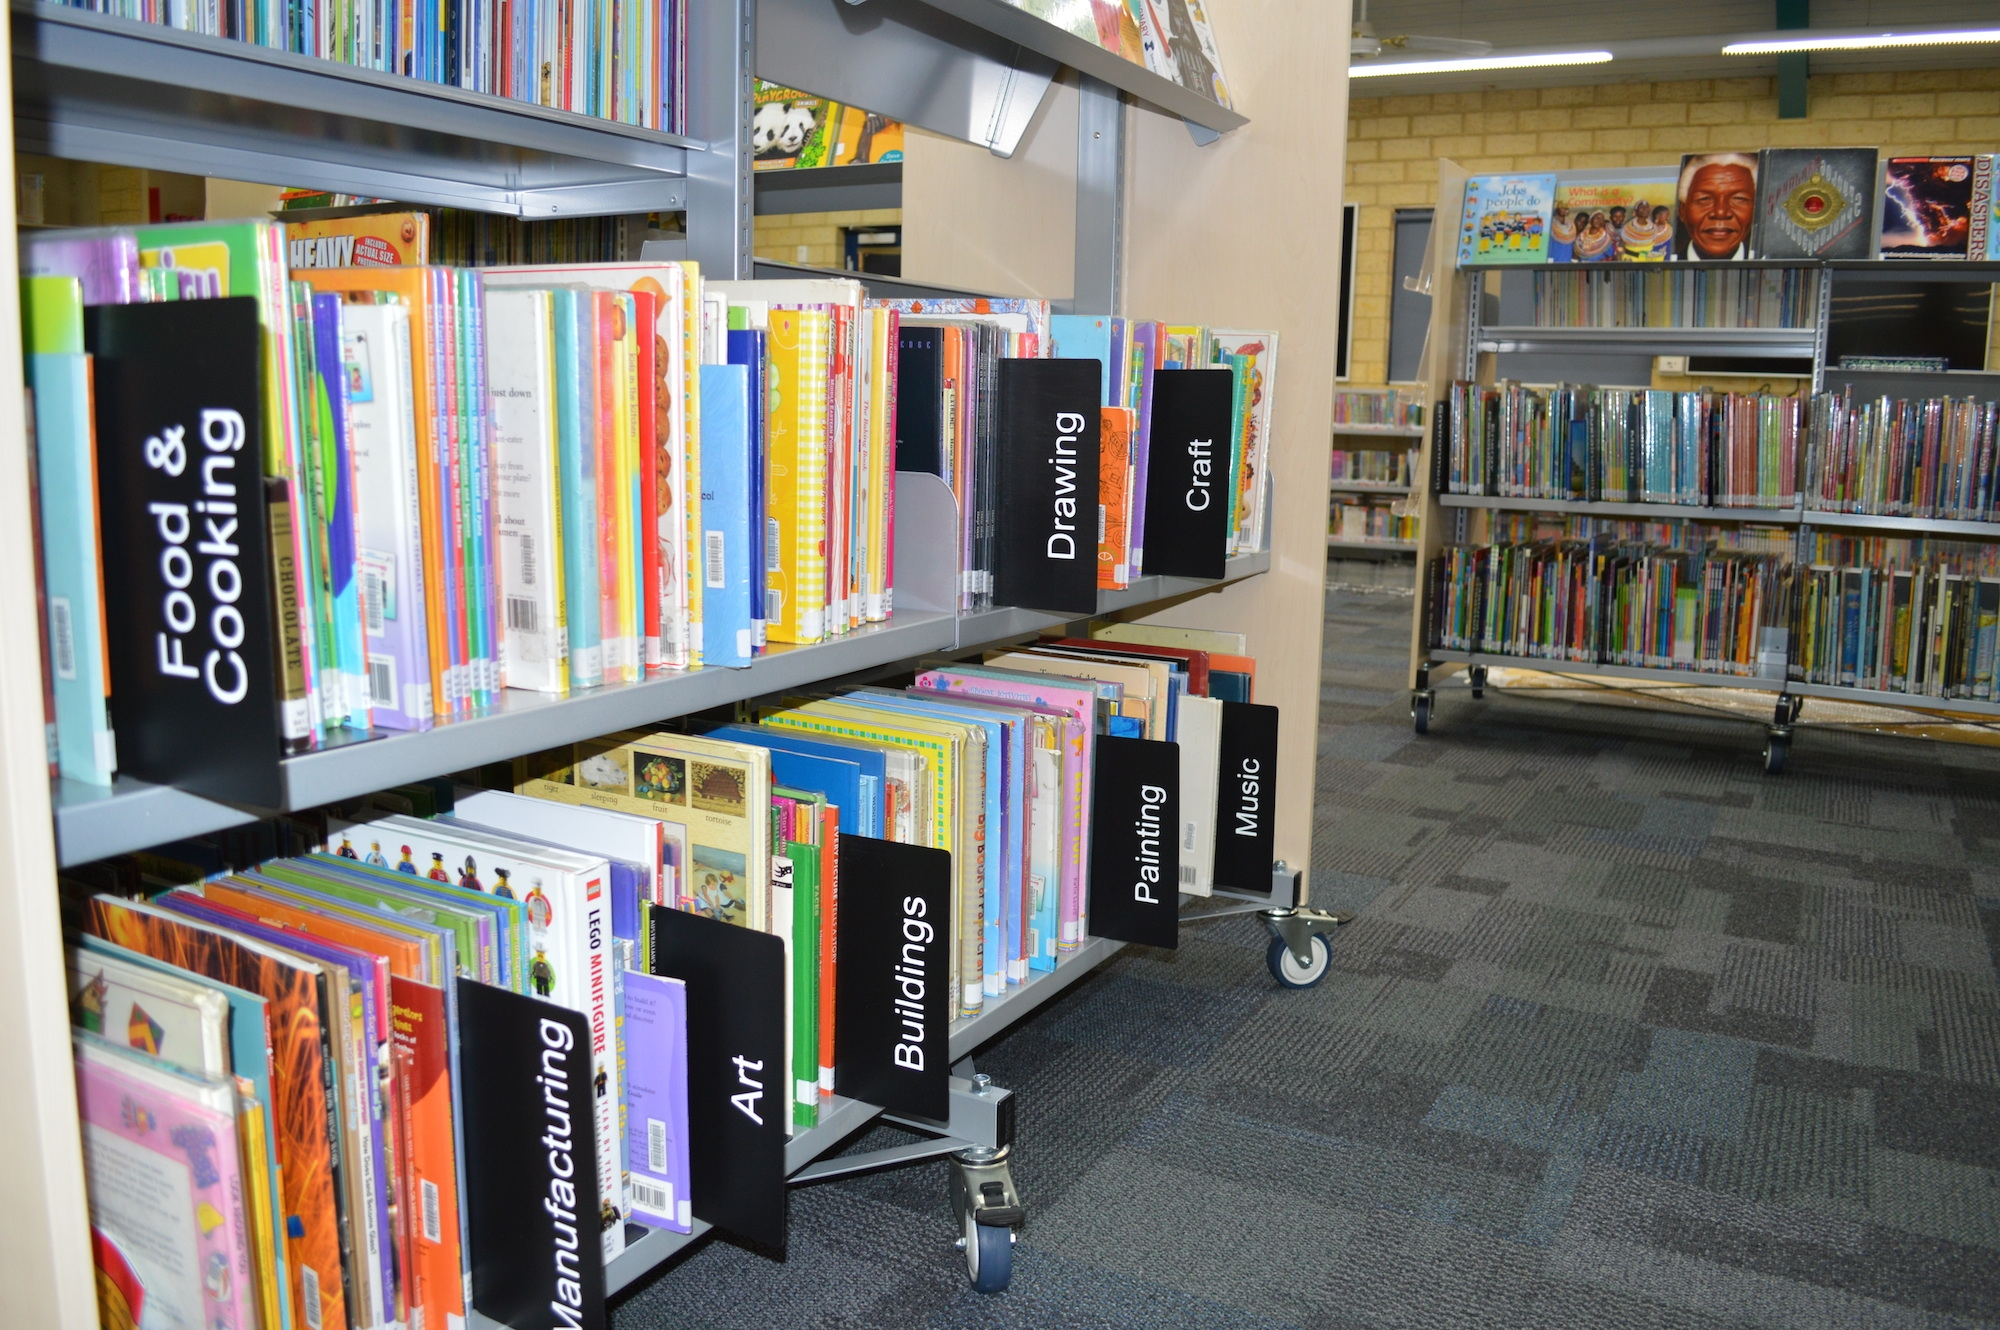 Section Dividers Merchandising Libraries For Library Shelf Dividers (View 8 of 15)